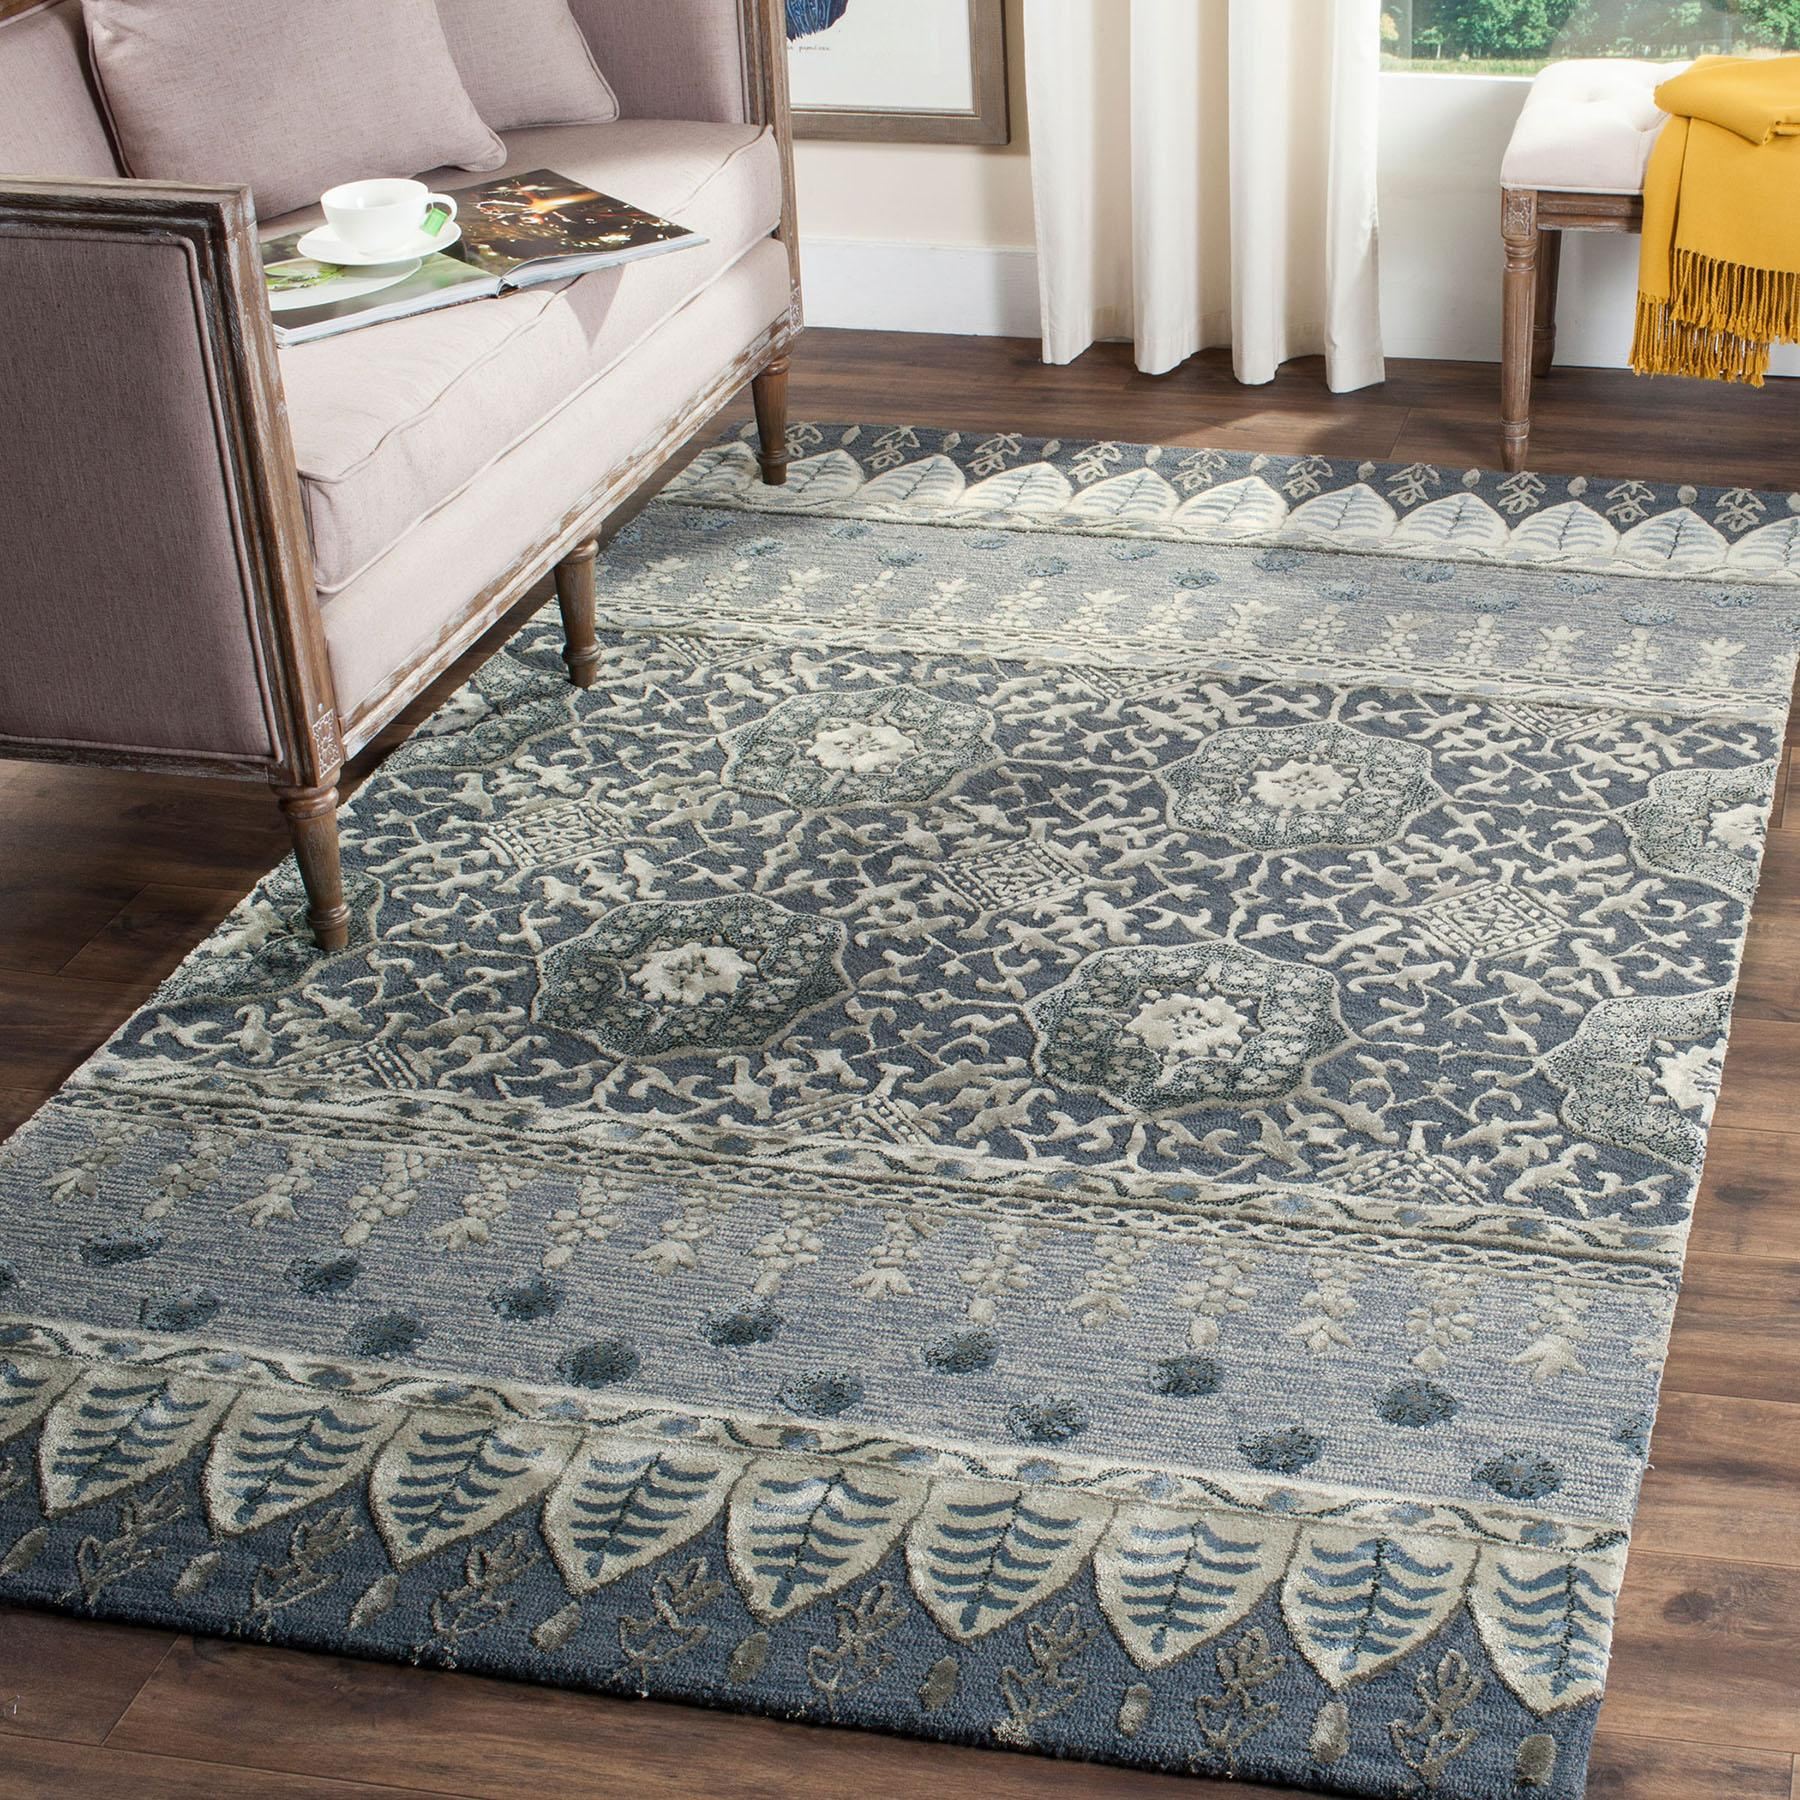 Rug Alr224a Allure Area Rugs By Safavieh